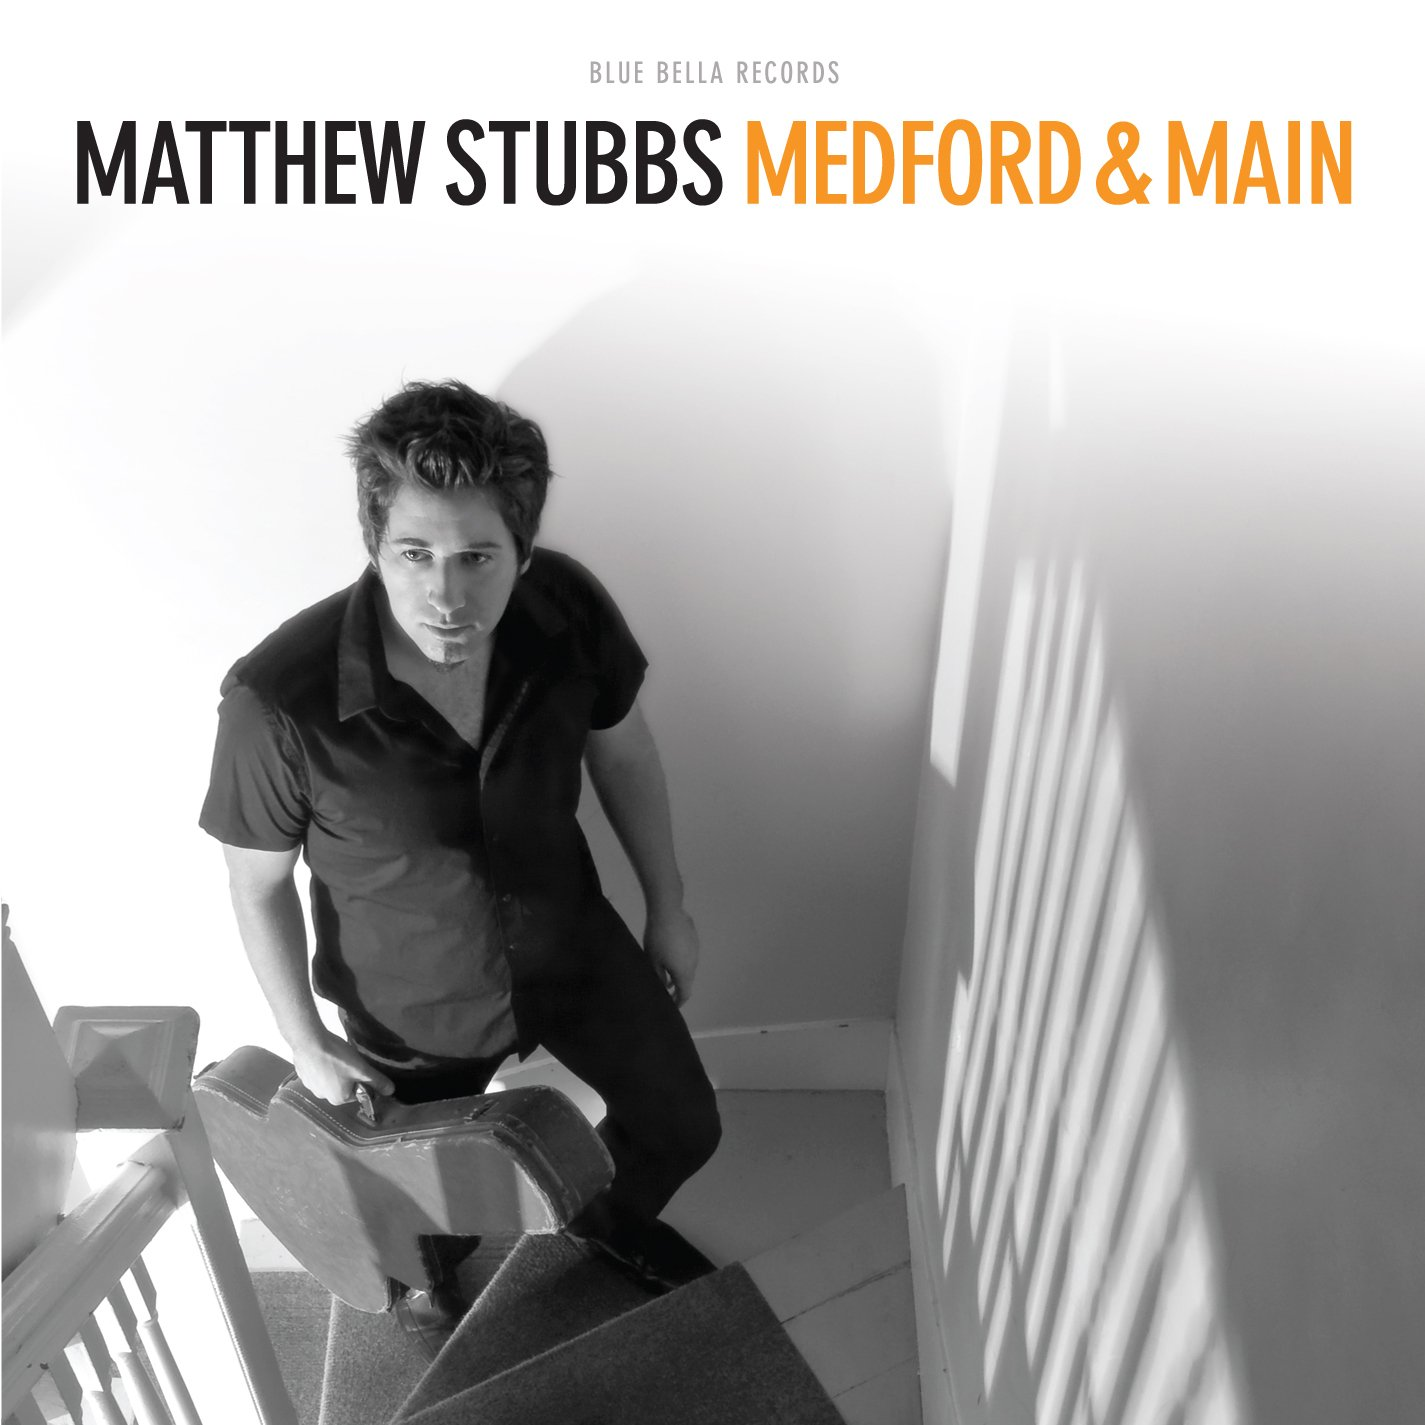 Medford & Main by Stubbs, Matthew